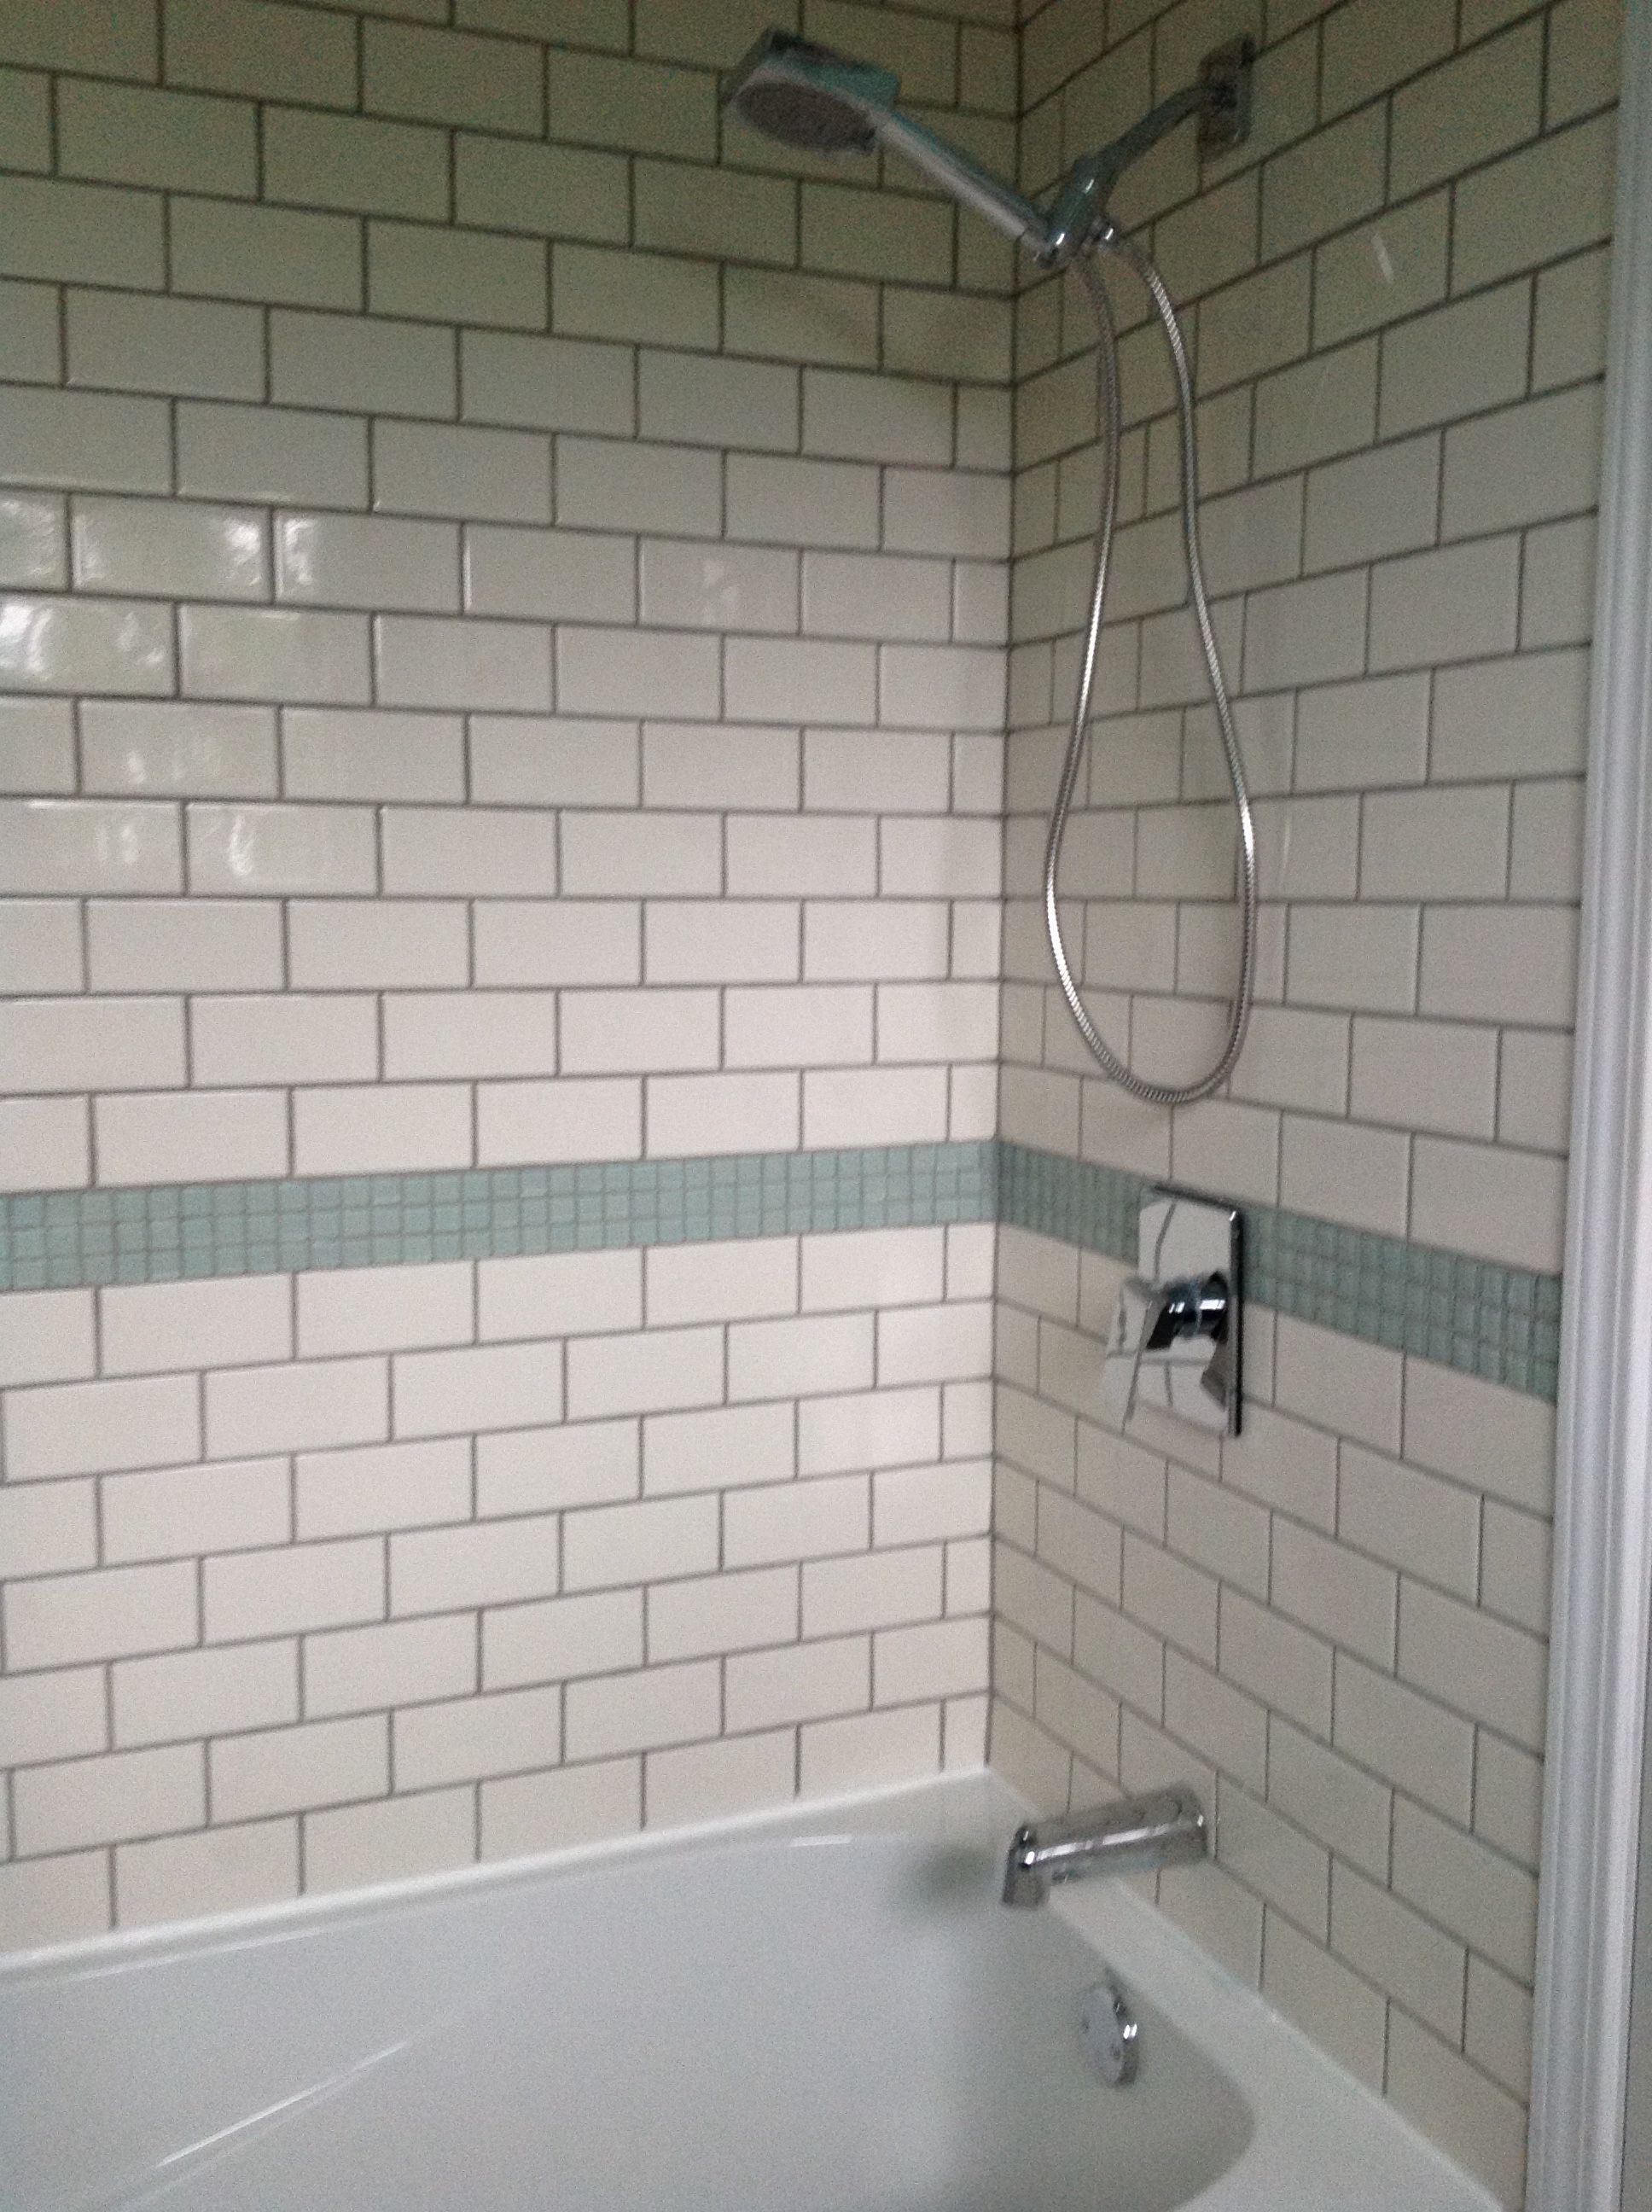 Cream Subway Tiles With Glass Squares Tile Bathroom Subway